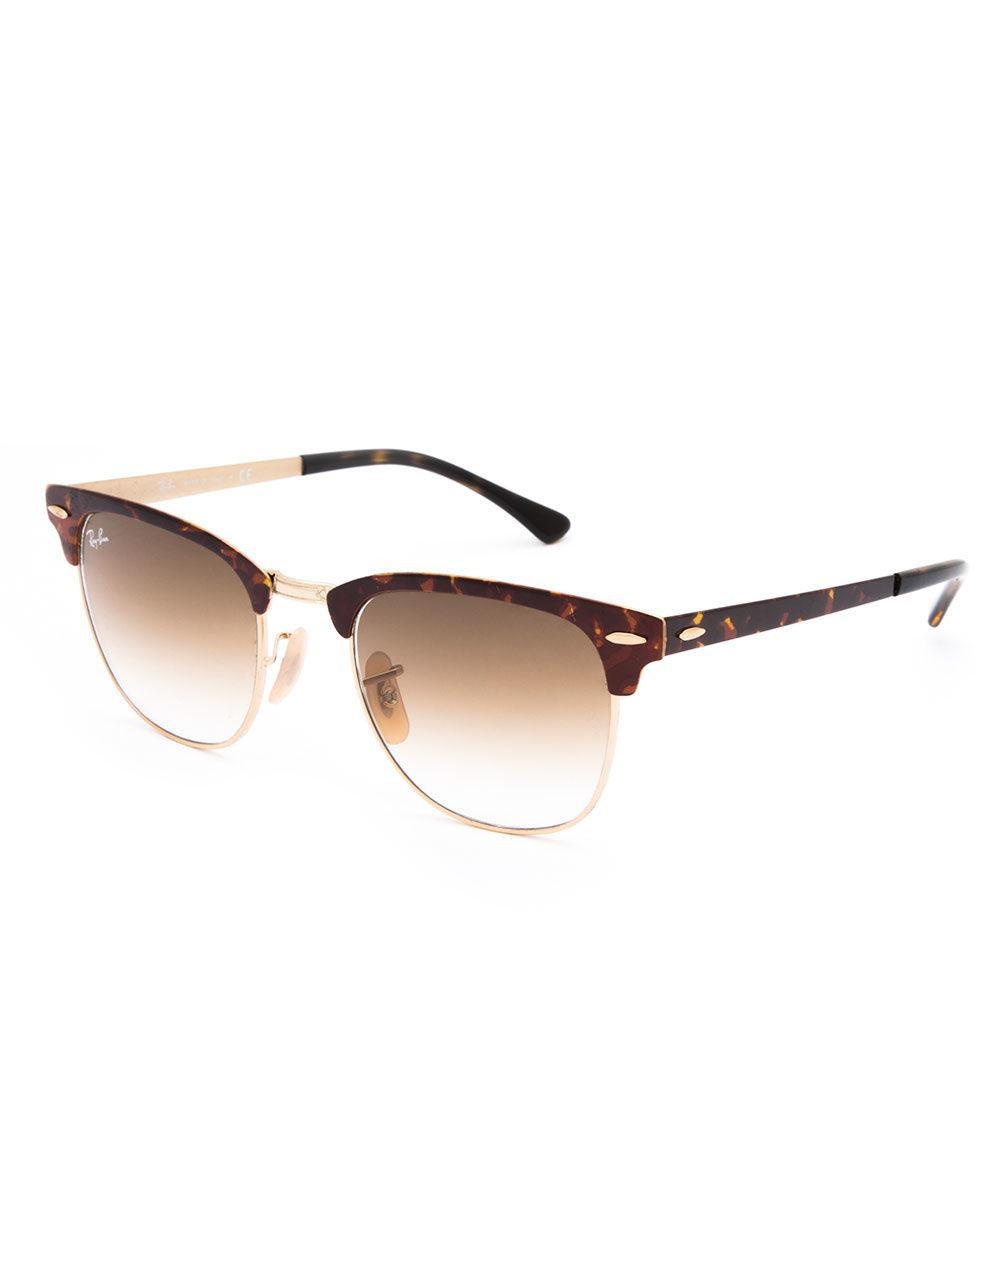 8086ba94ba2 Ray-Ban. Women s Clubmaster Metal Tortoise   Light Brown Gradient Sunglasses